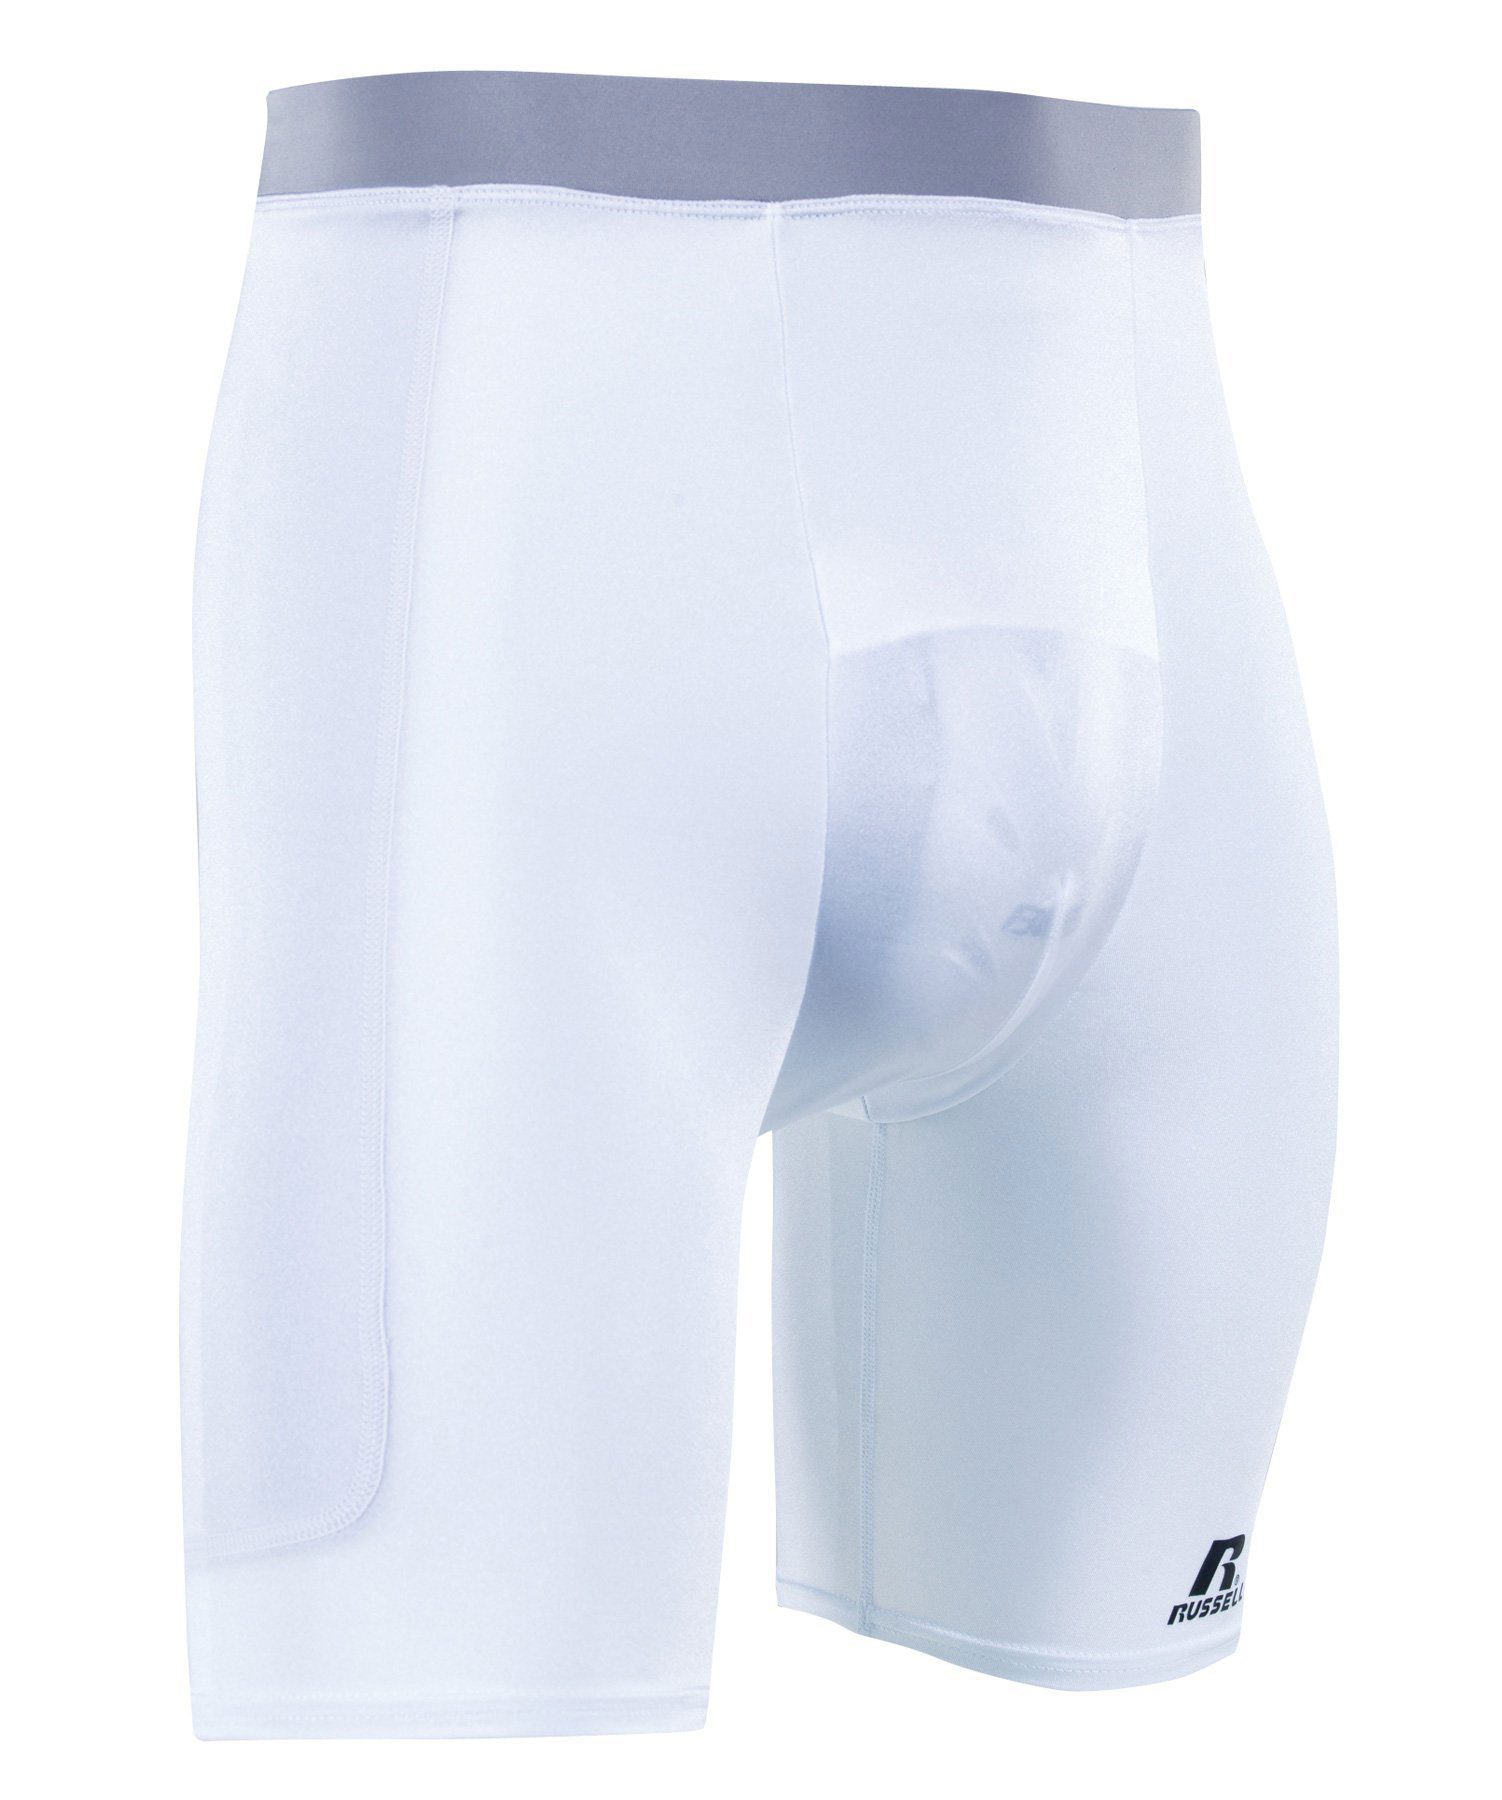 Russell Athletic Adult Sliding short with Cup Pocket